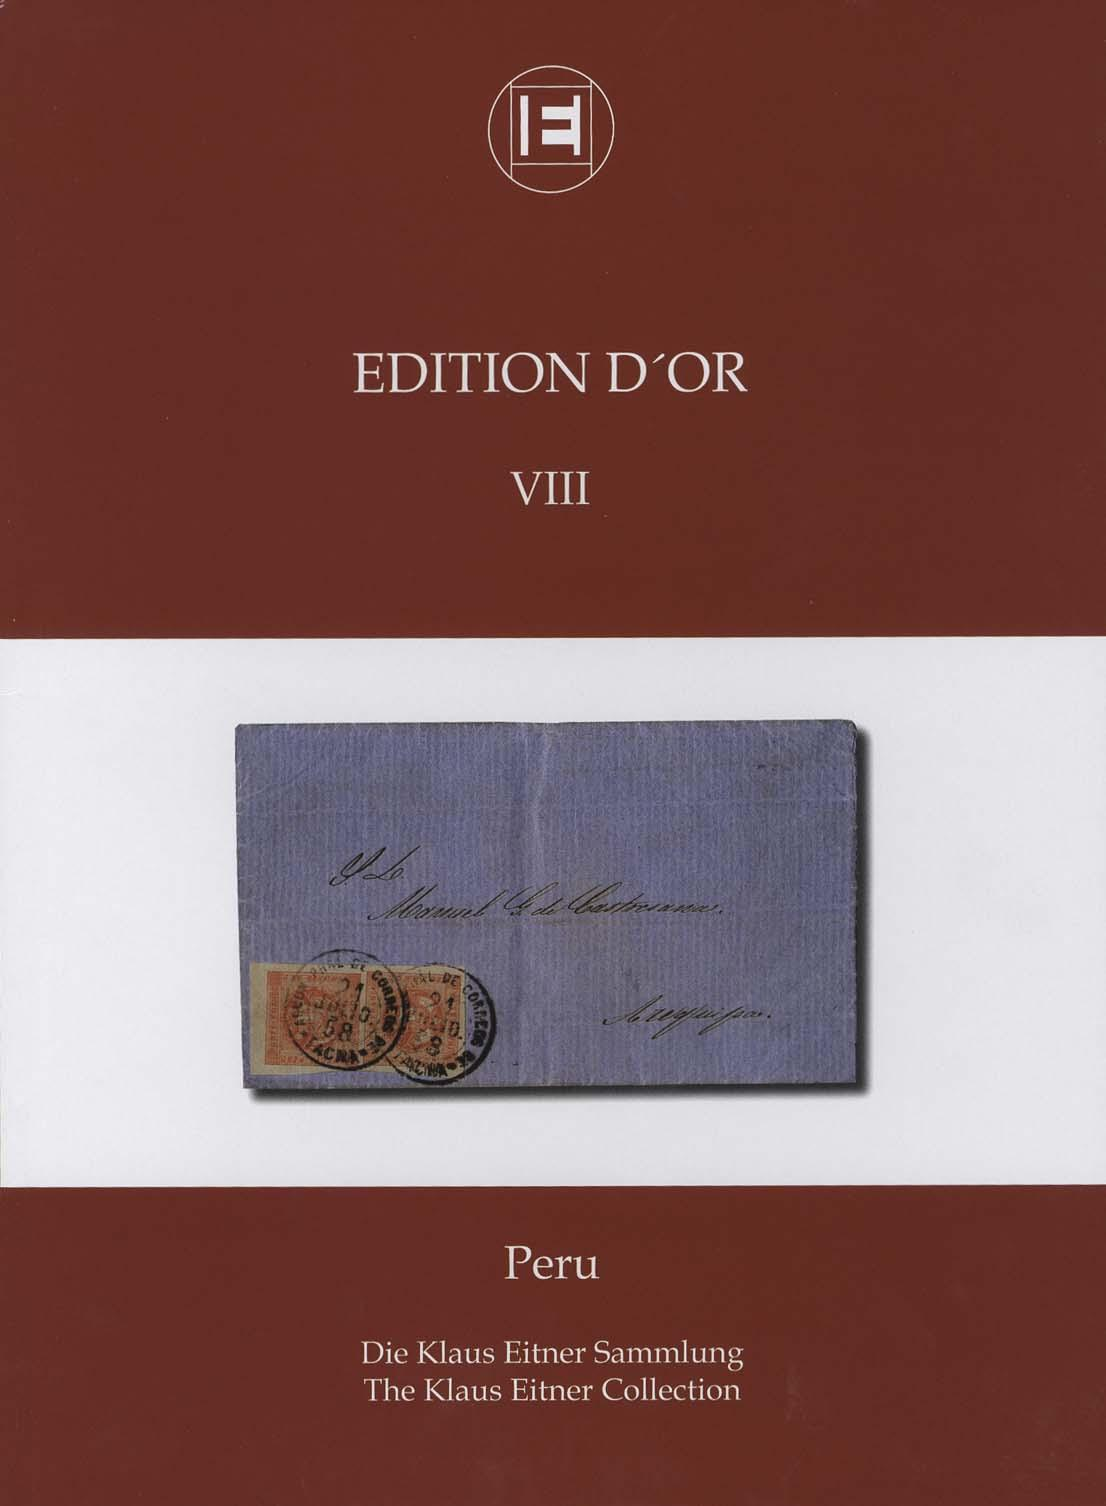 Vol. 8: Peru • The Klaus Eitner Collection